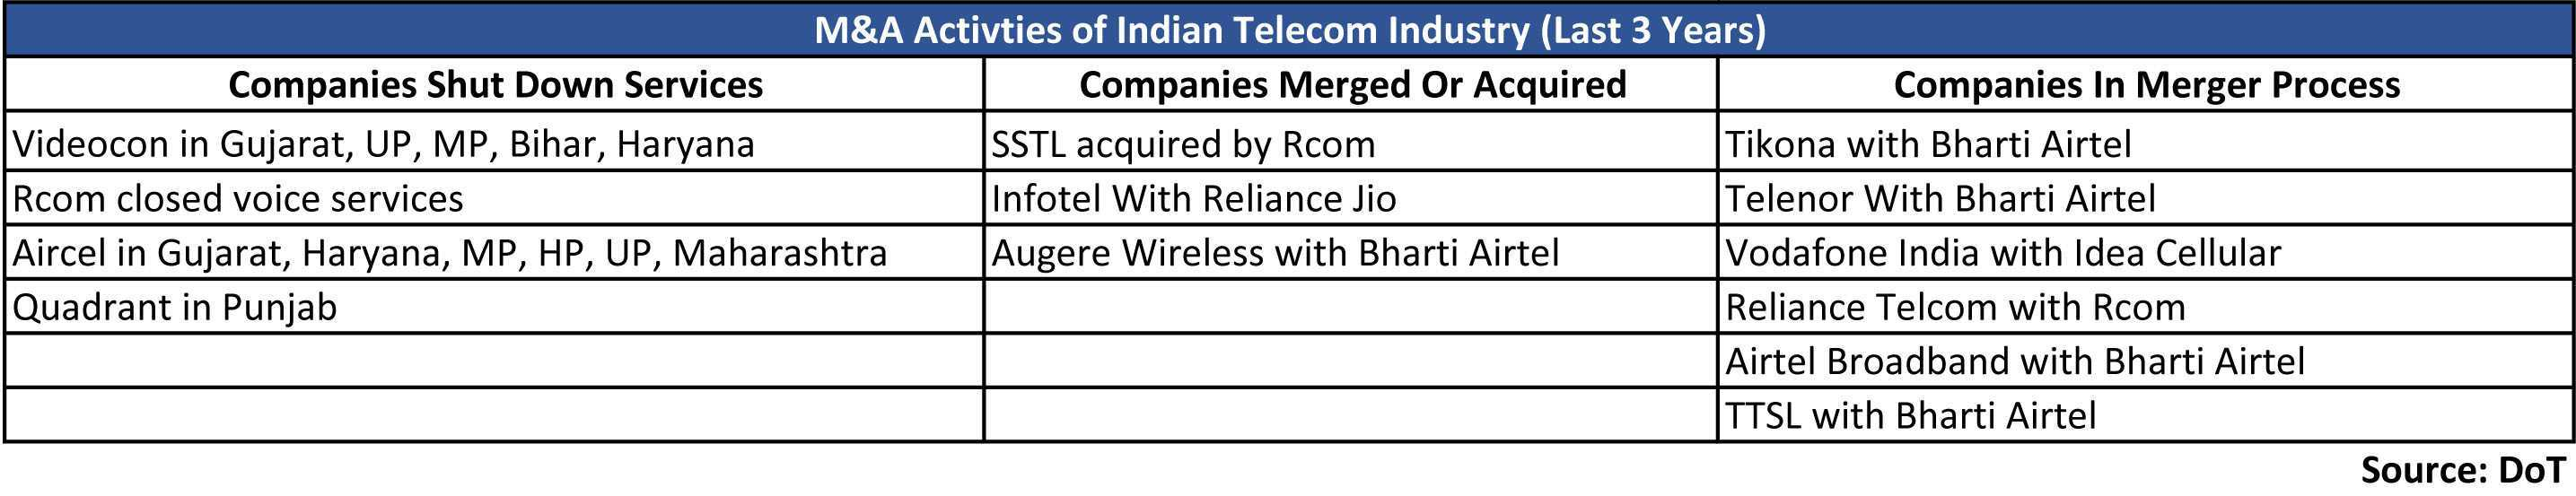 Activties of Indian Telecom Industry (last 3 Years)